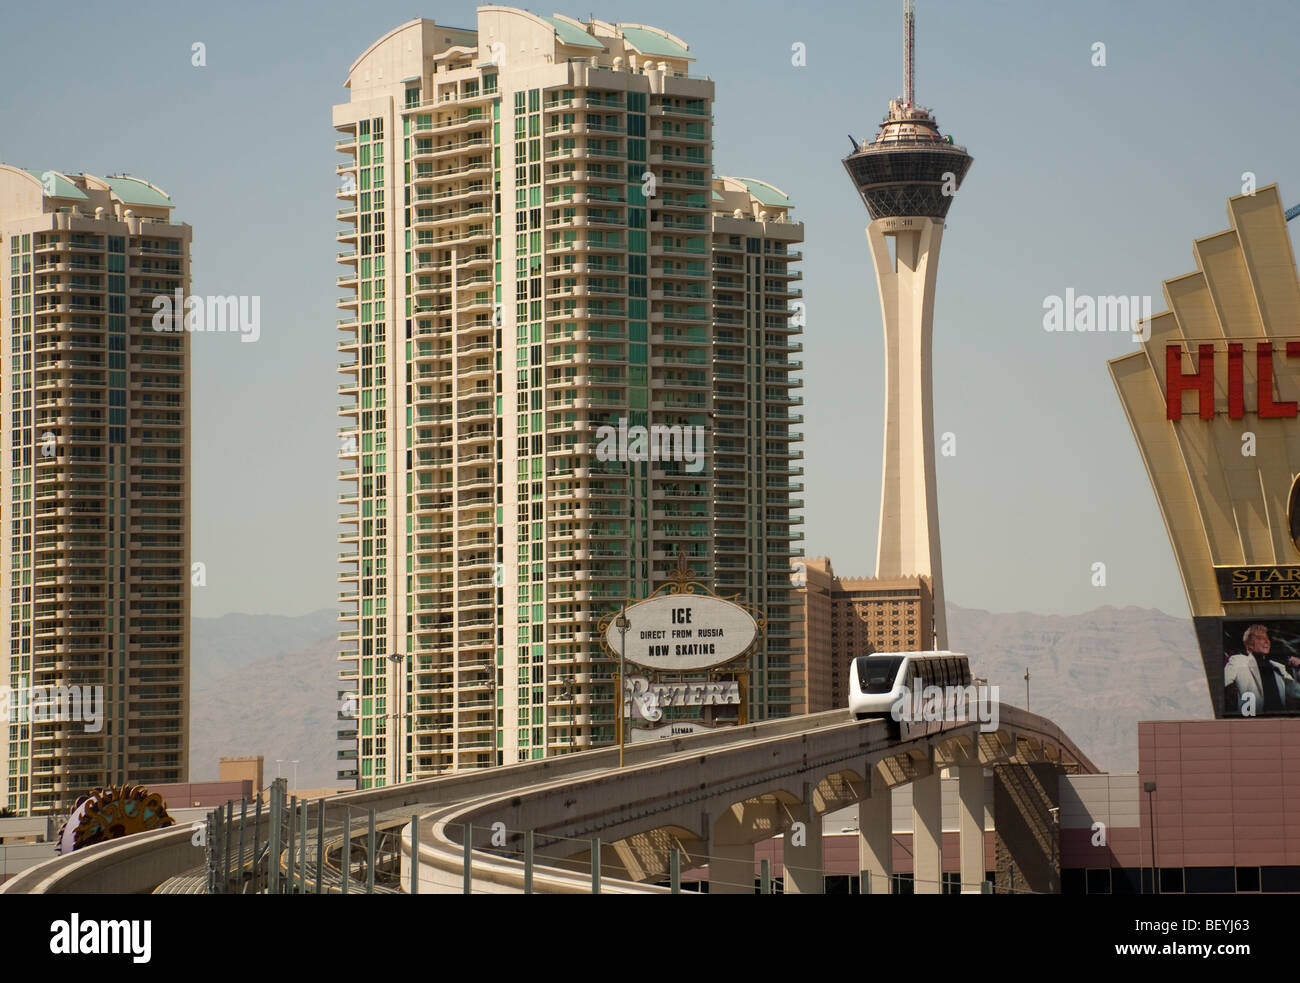 The high level monorail train glides between high rise buildings in Las Vegas, USA. - Stock Image